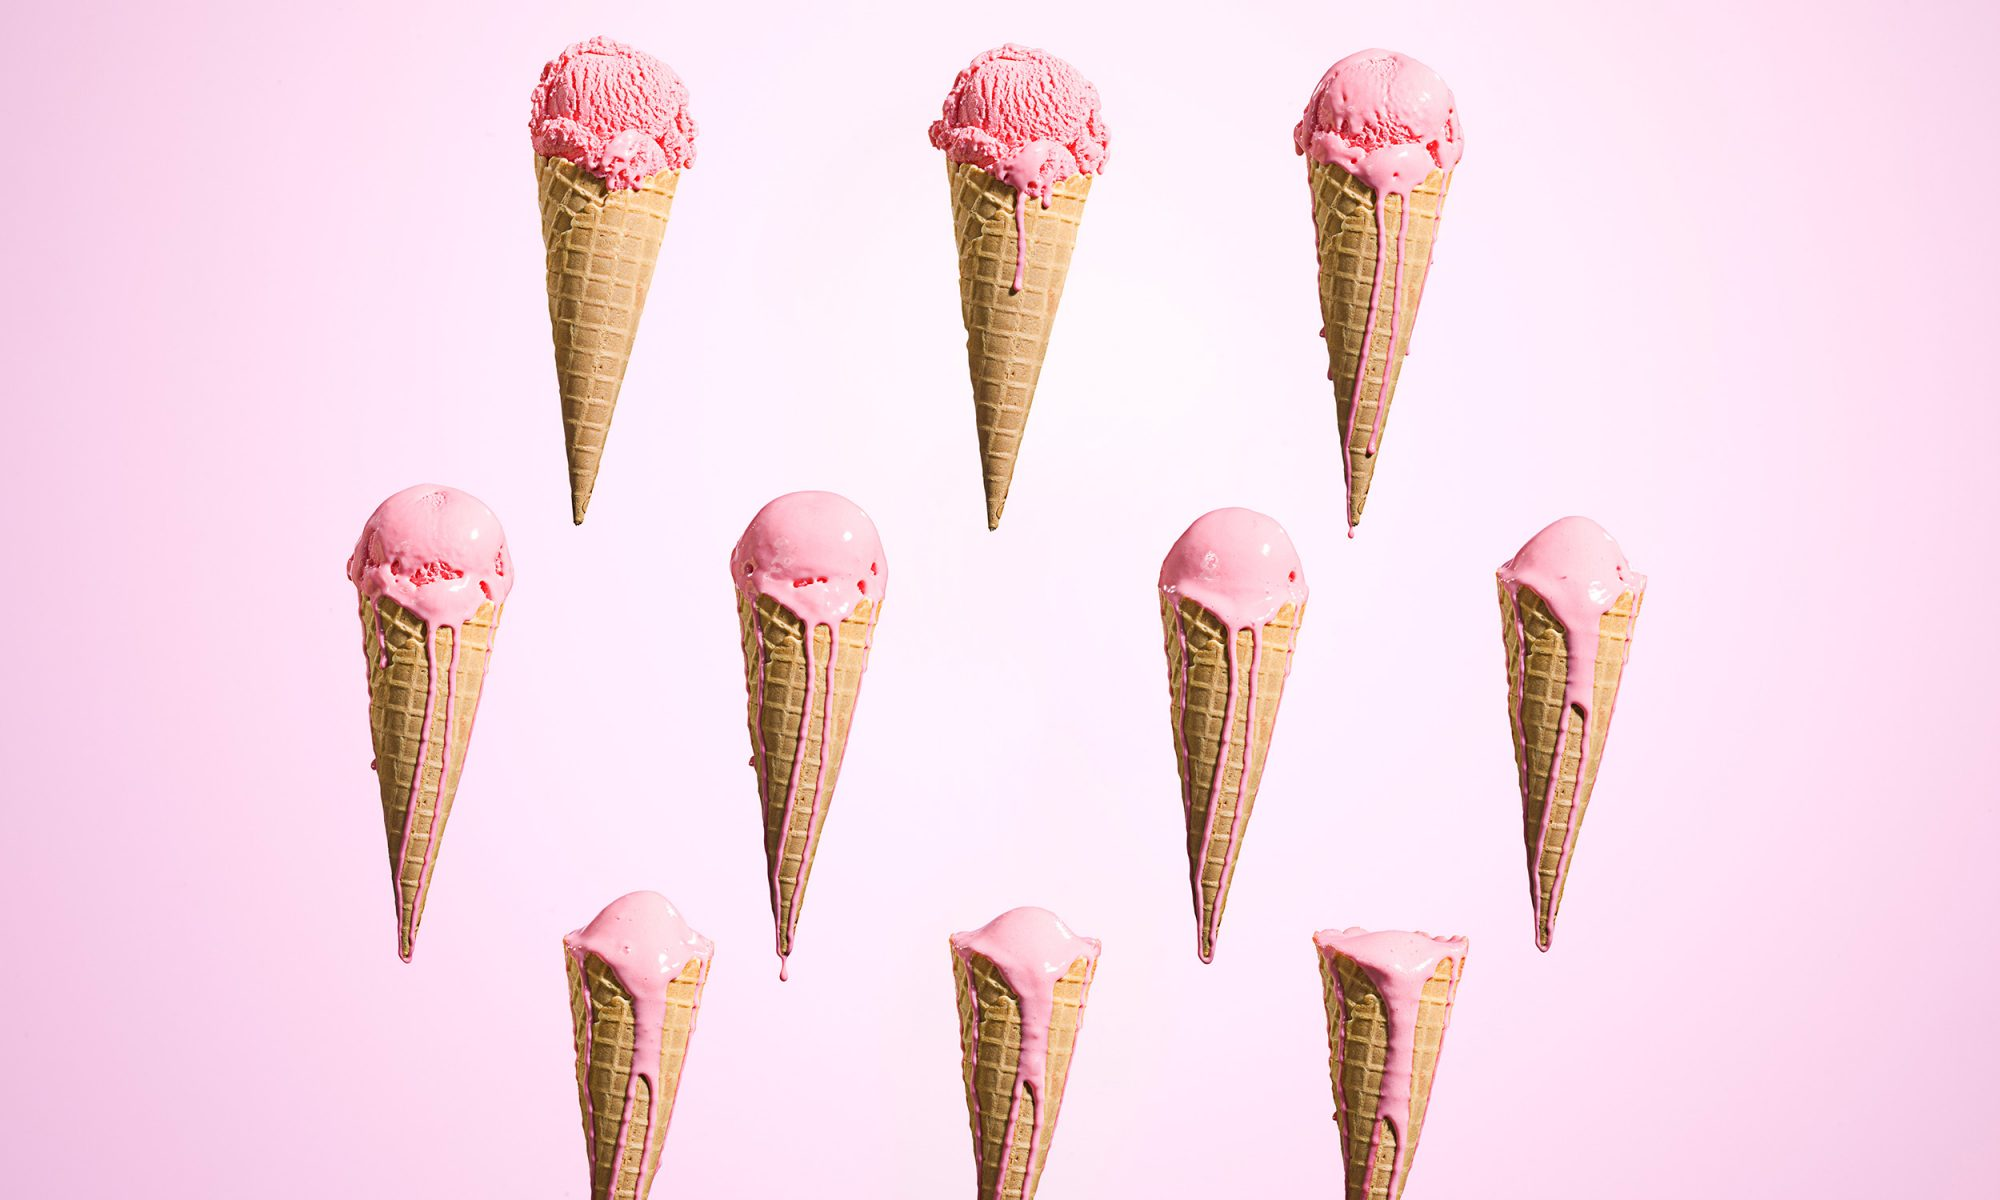 EC: 3 Important Things to Know About Making Ice Cream